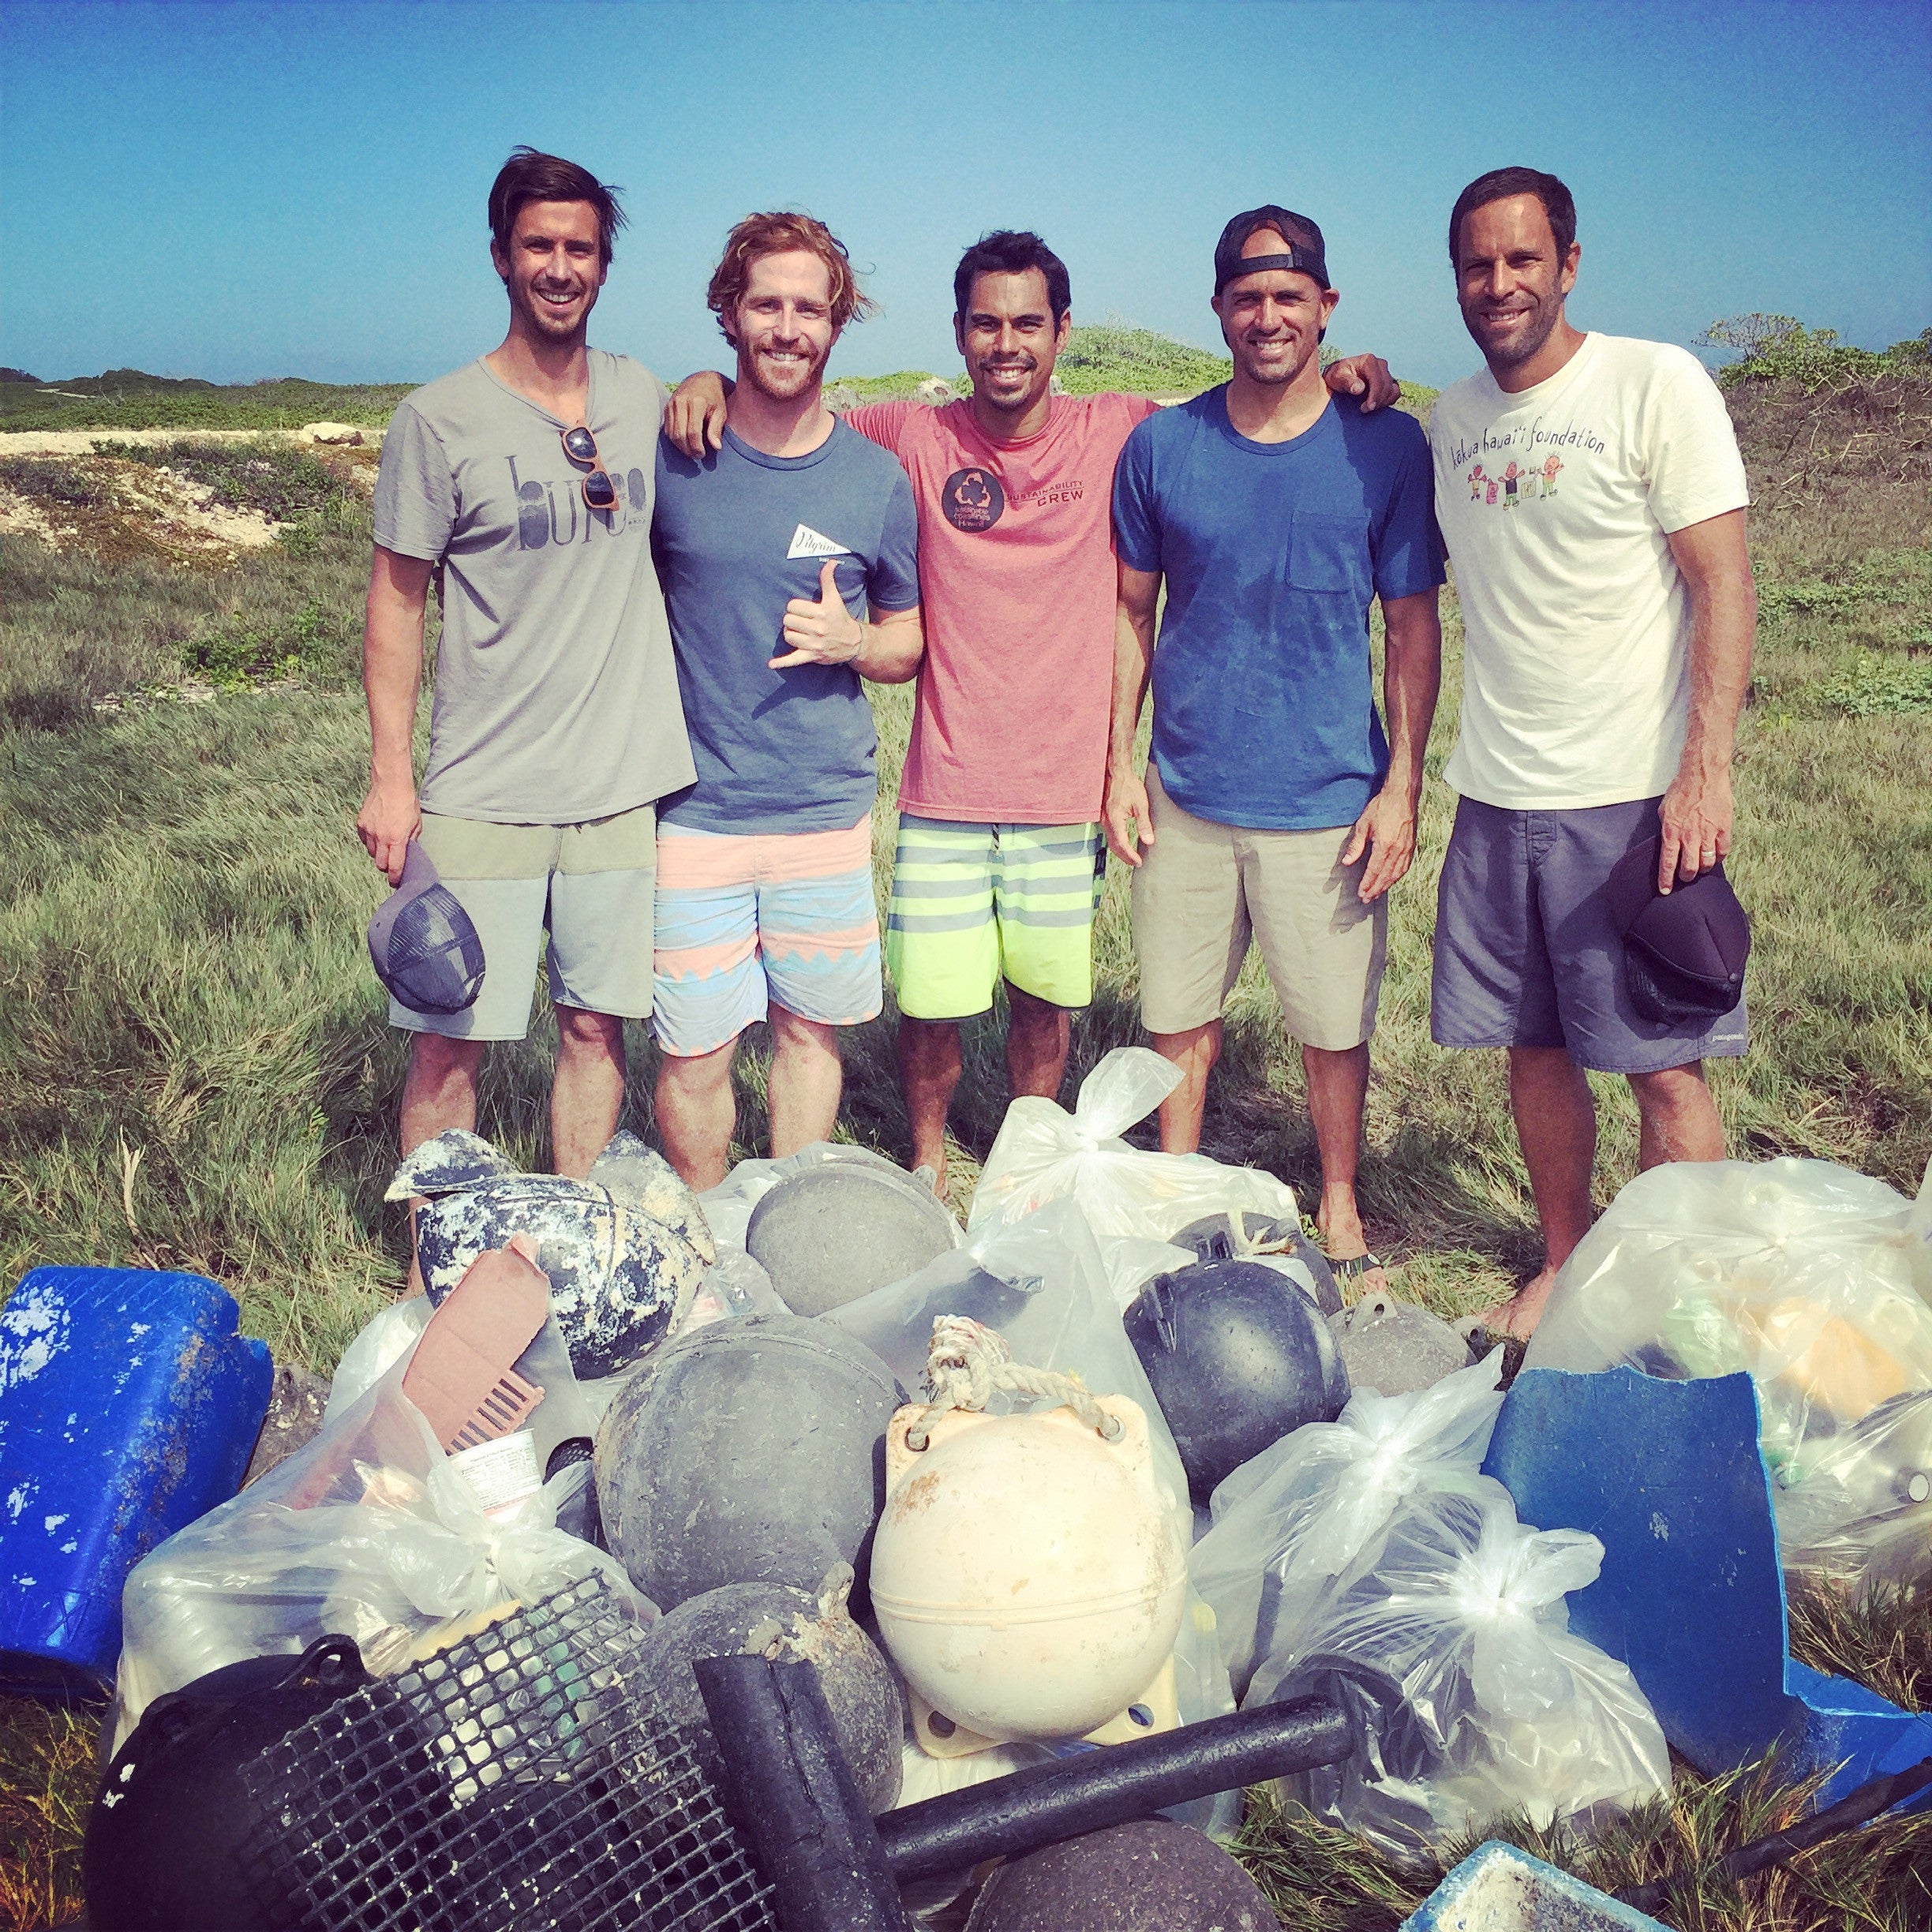 Bureo joined over 400 volunteers [including a few decent surfers!] to help remove over 3,900 pounds from Kahuku Beach in 2015